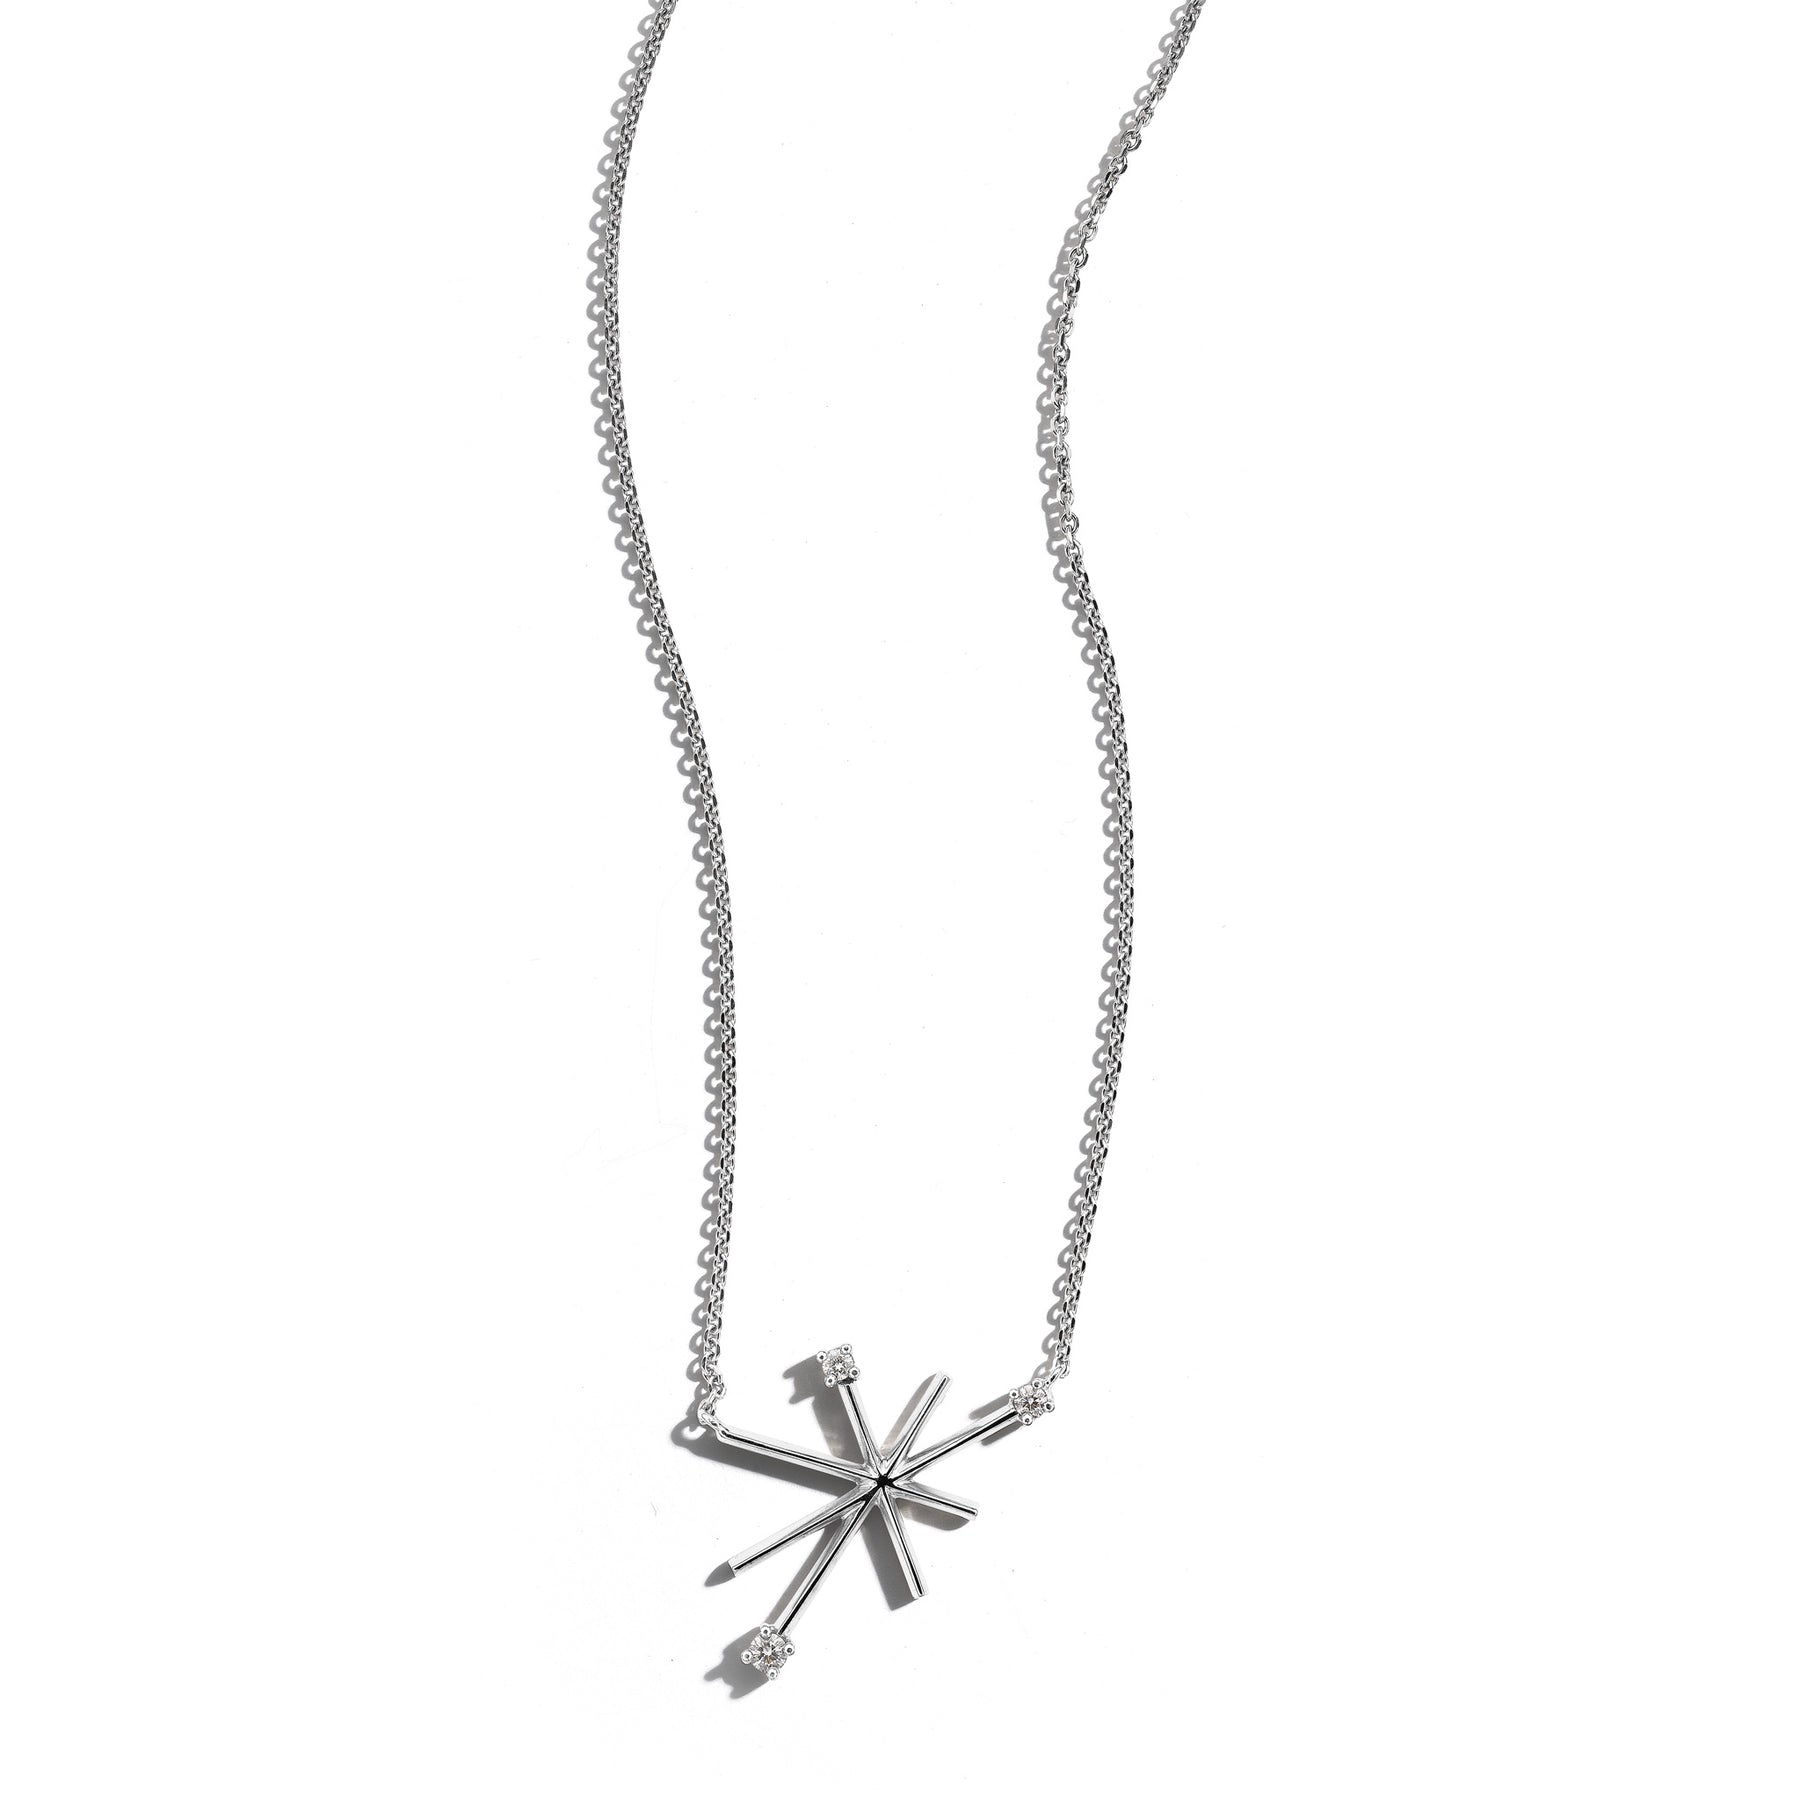 Mimi-So-Piece-Star-Necklace-Small_18k White Gold